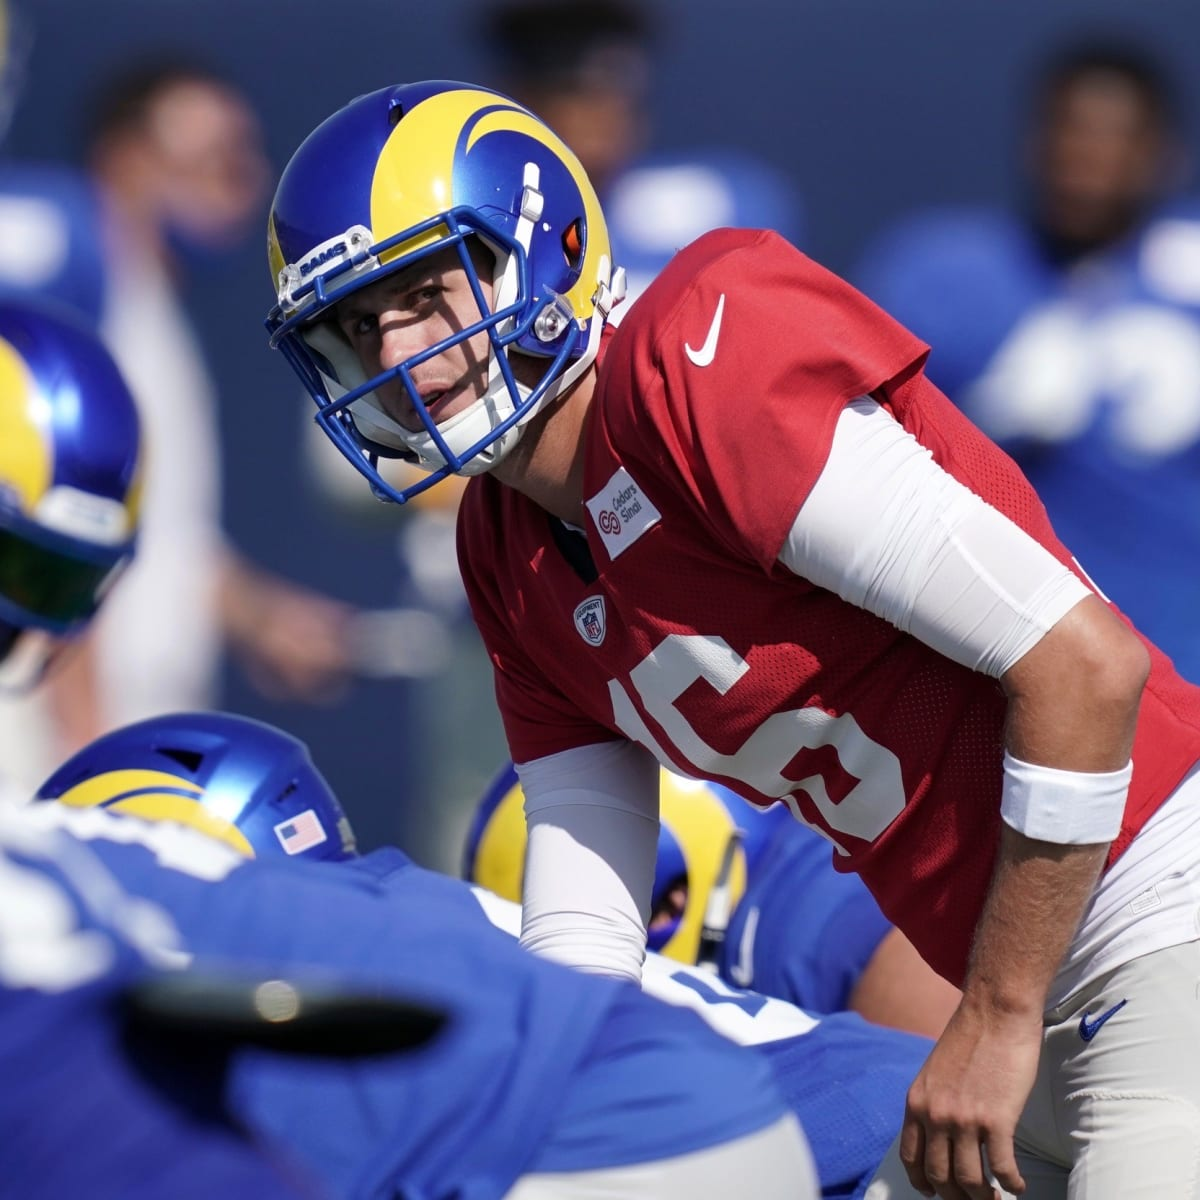 Can Offseason Changes Add Up To A Bounce Back For Jared Goff And The Rams Sports Illustrated Cal Bears News Analysis And More